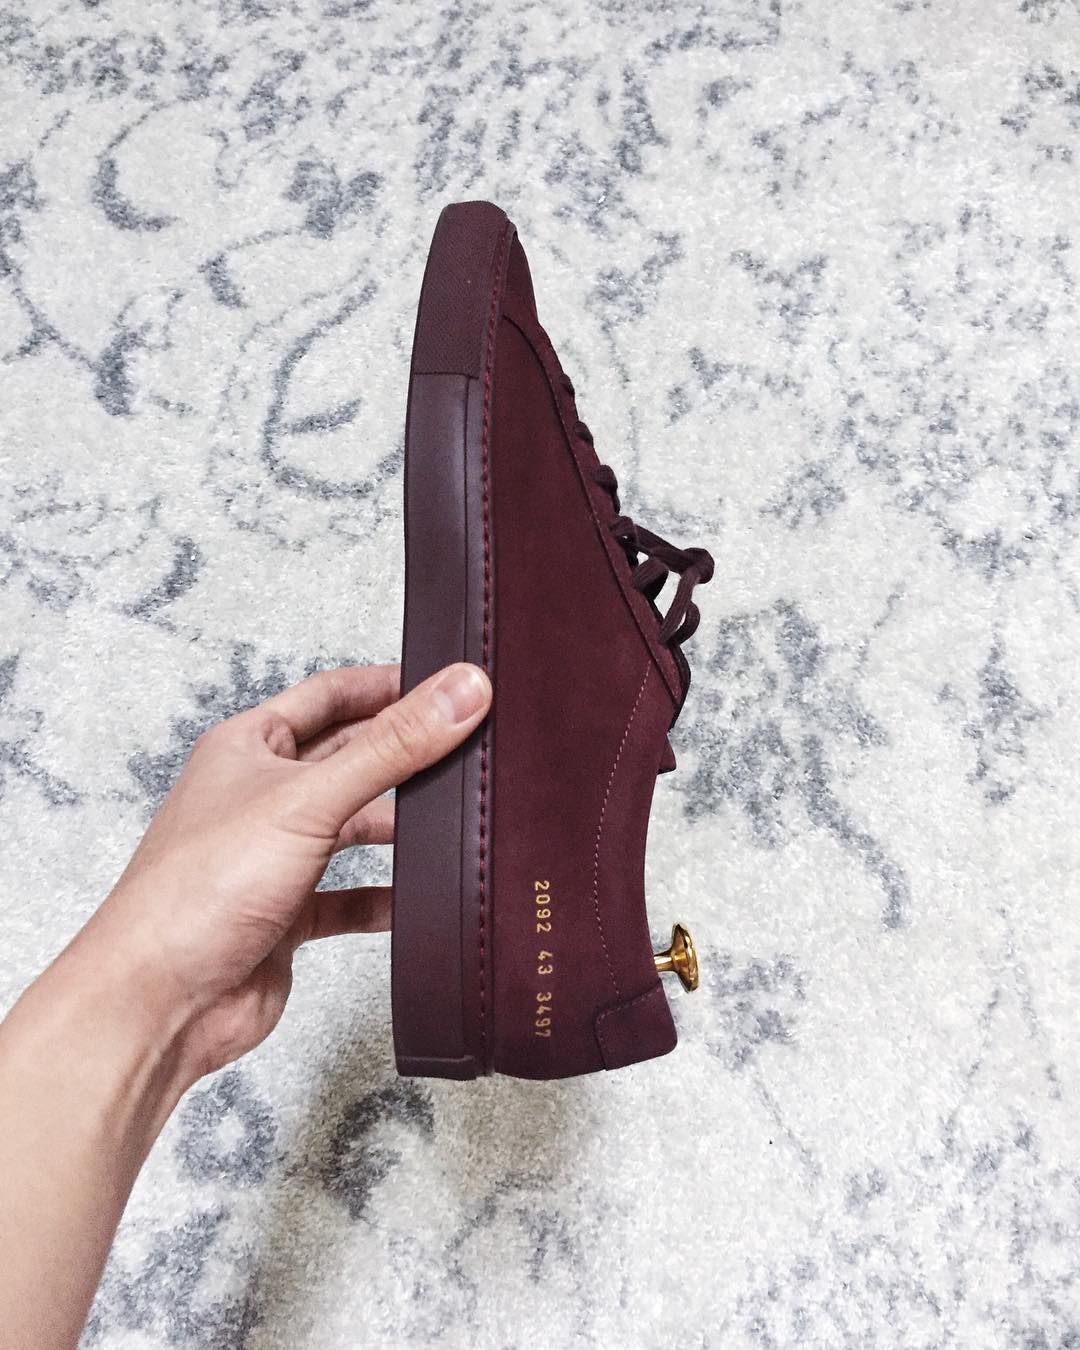 19 Best Hermes images in 2015   Sneakers, Shoes, Fashion